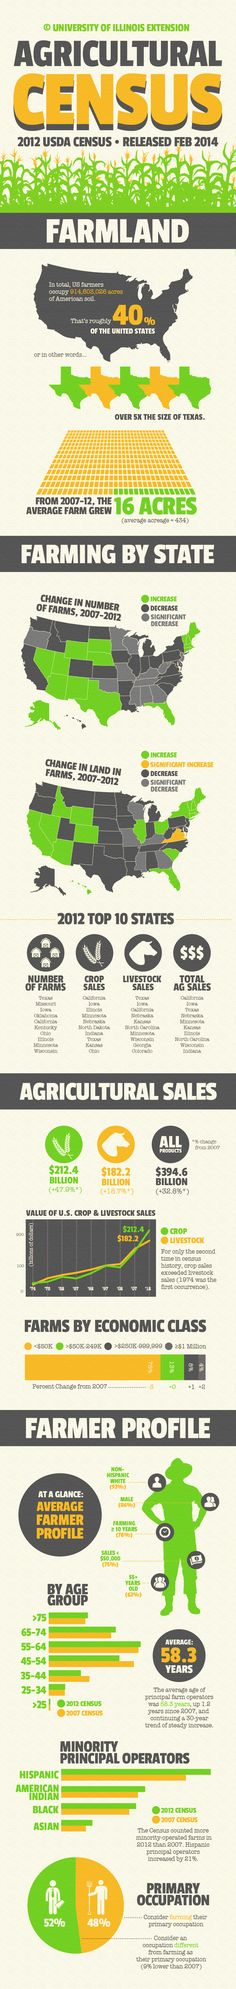 Infographic Summary of 2012 USDA Census Results (released Feb 2014)